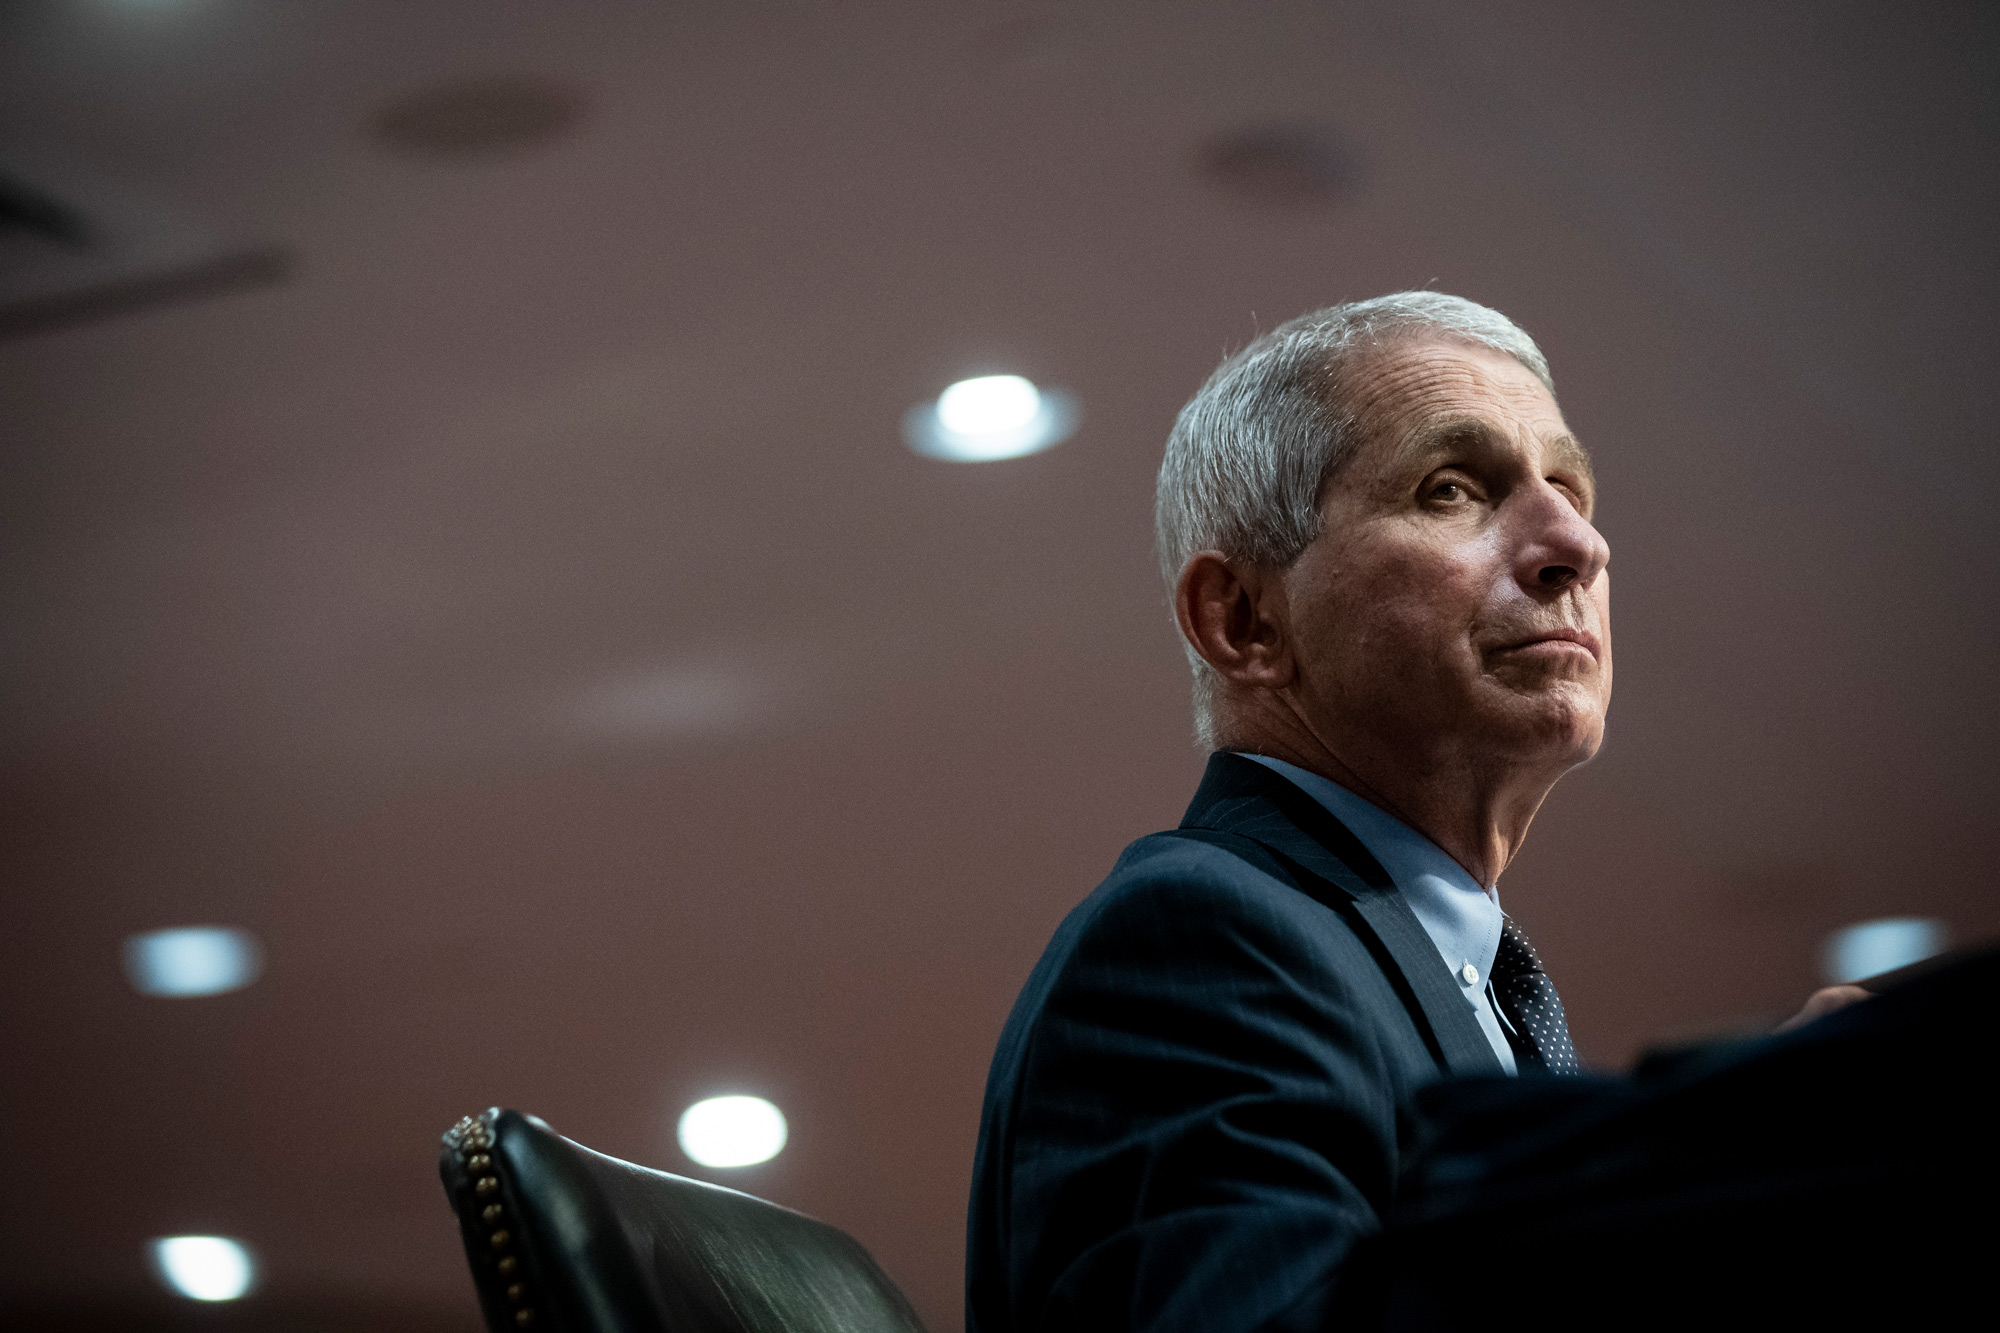 Dr. Anthony Fauci, director of the National Institute of Allergy and Infectious Diseases, listens during a Senate Health, Education, Labor and Pensions Committee hearing on June 30 in Washington, DC.